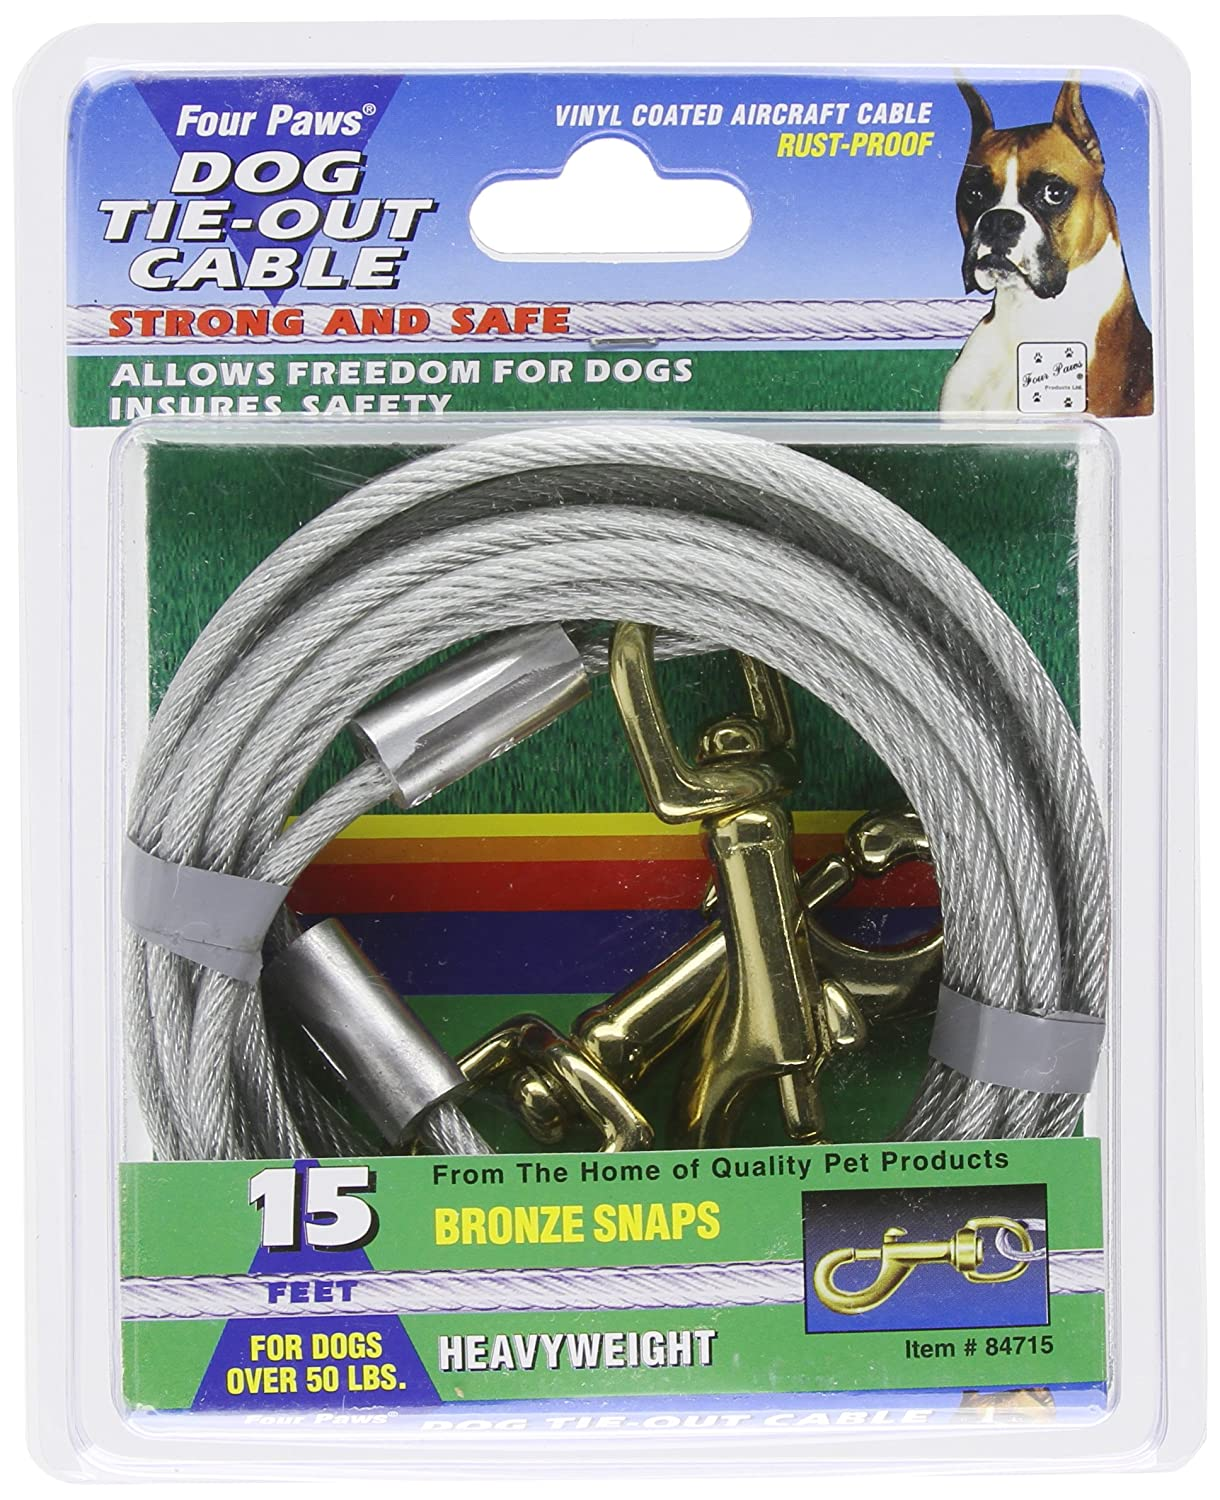 Four Paws Silver Heavy Weight Dog Tie Out Cable 100203837